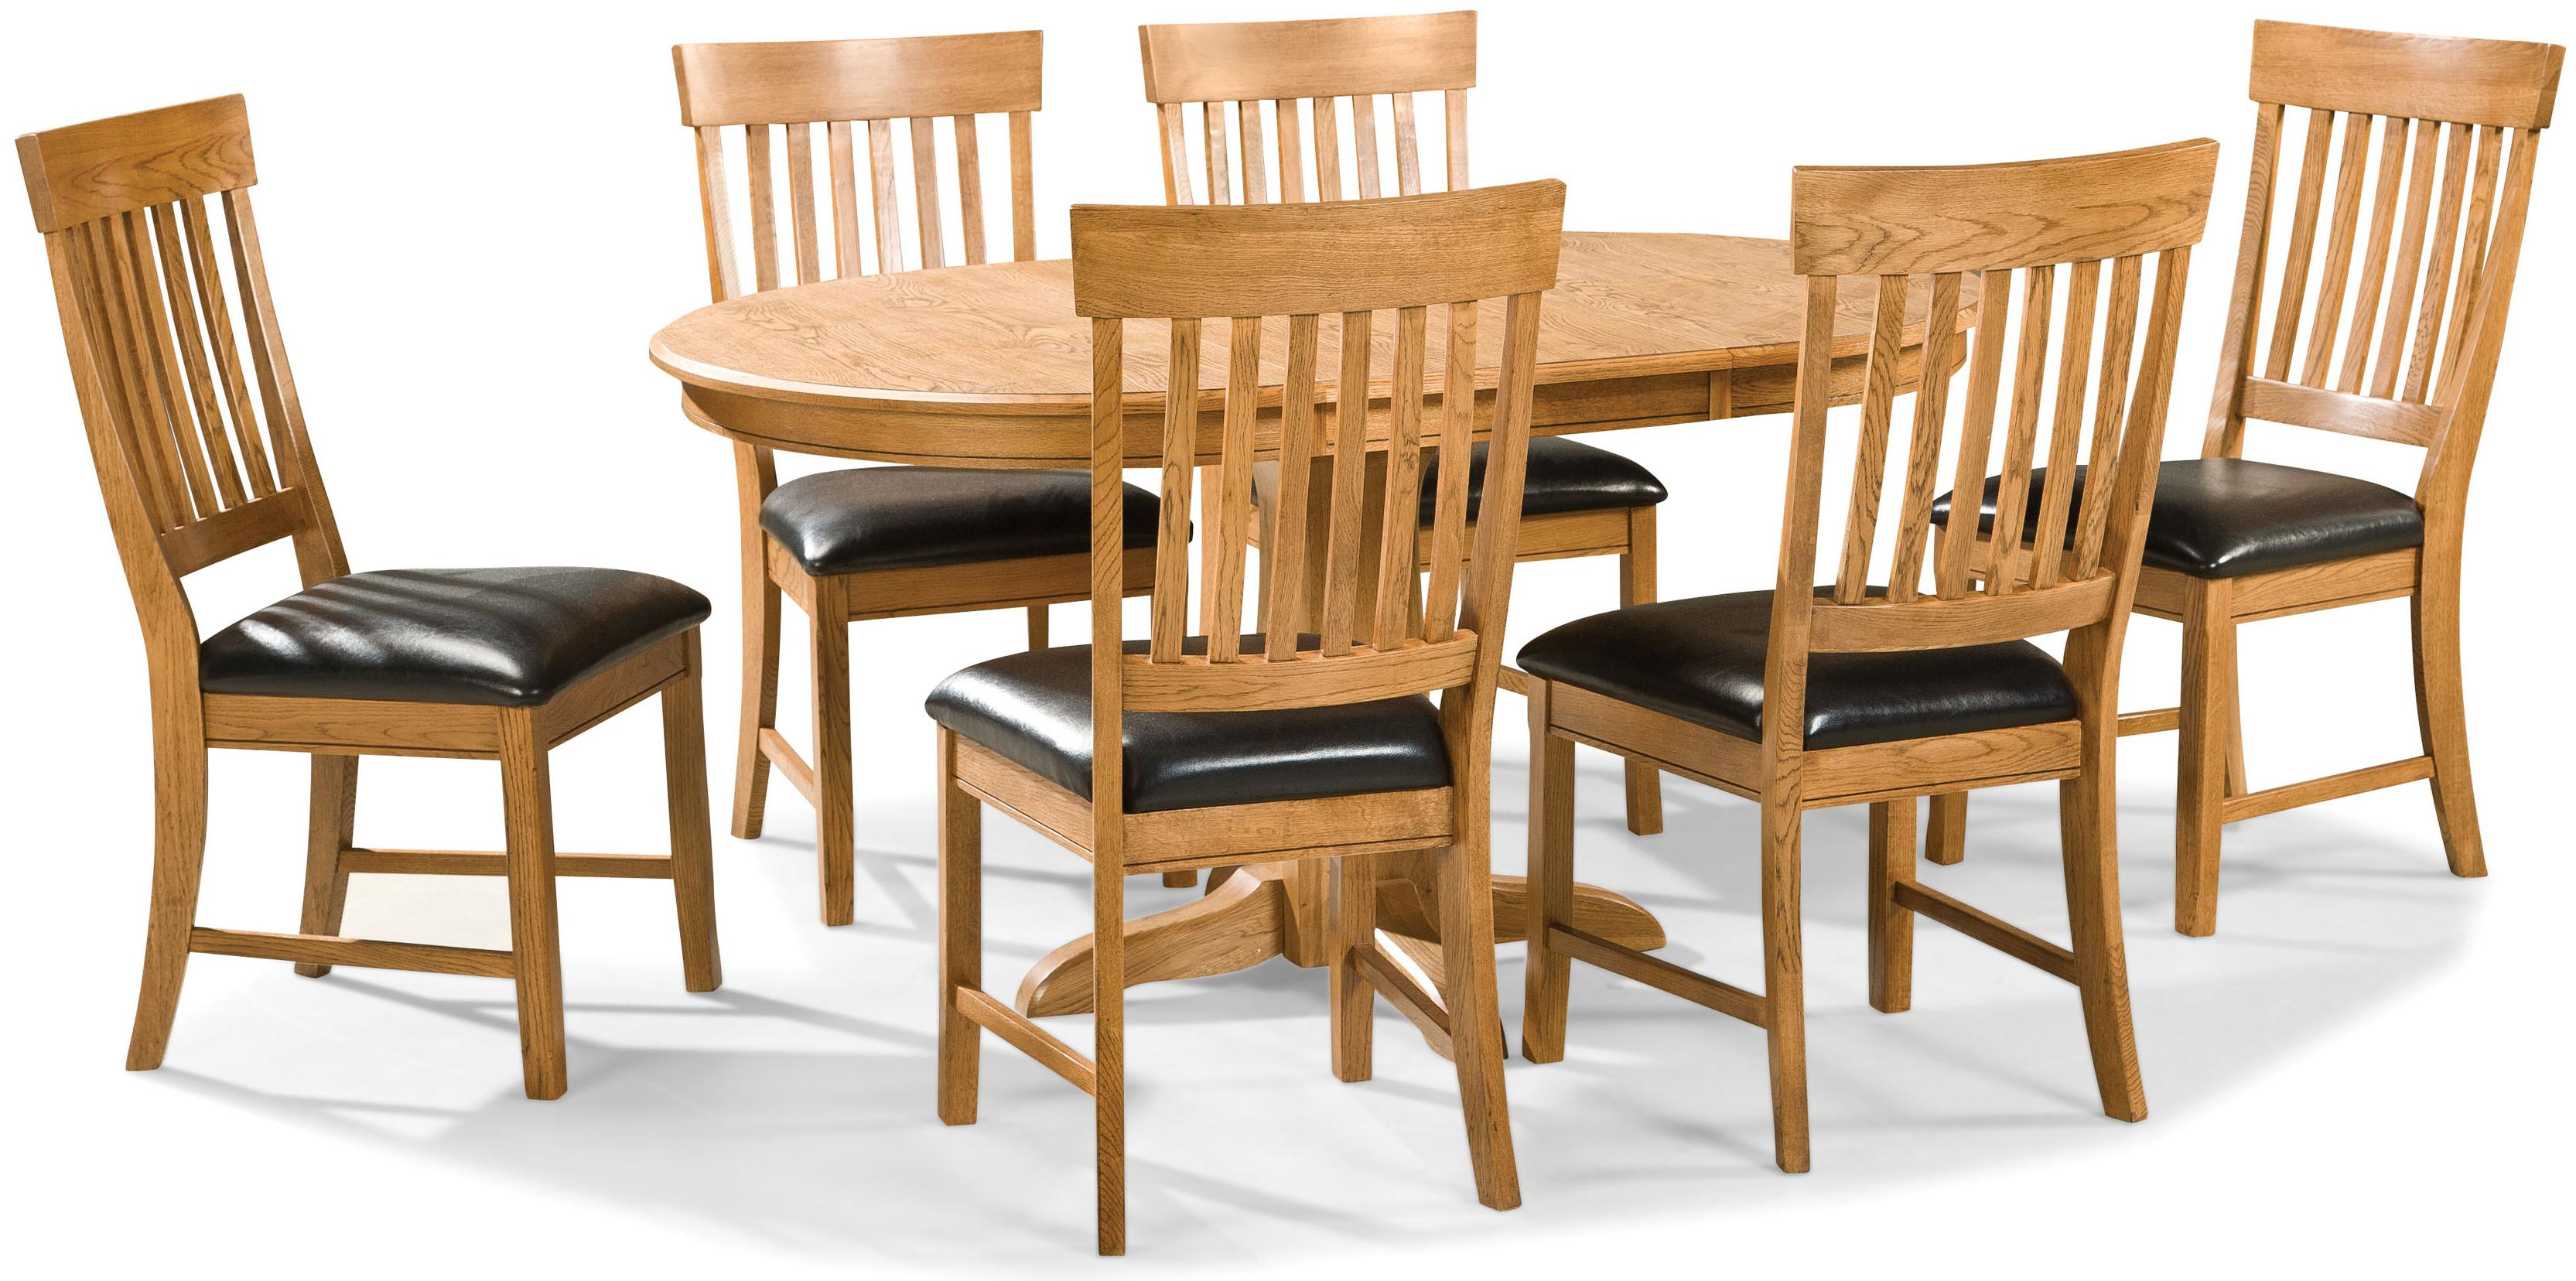 Intercon Family Dining 7 Piece Dining Set - Item Number: FD-TA-L4260-CNT-BSE+TOP+6xCH-180C